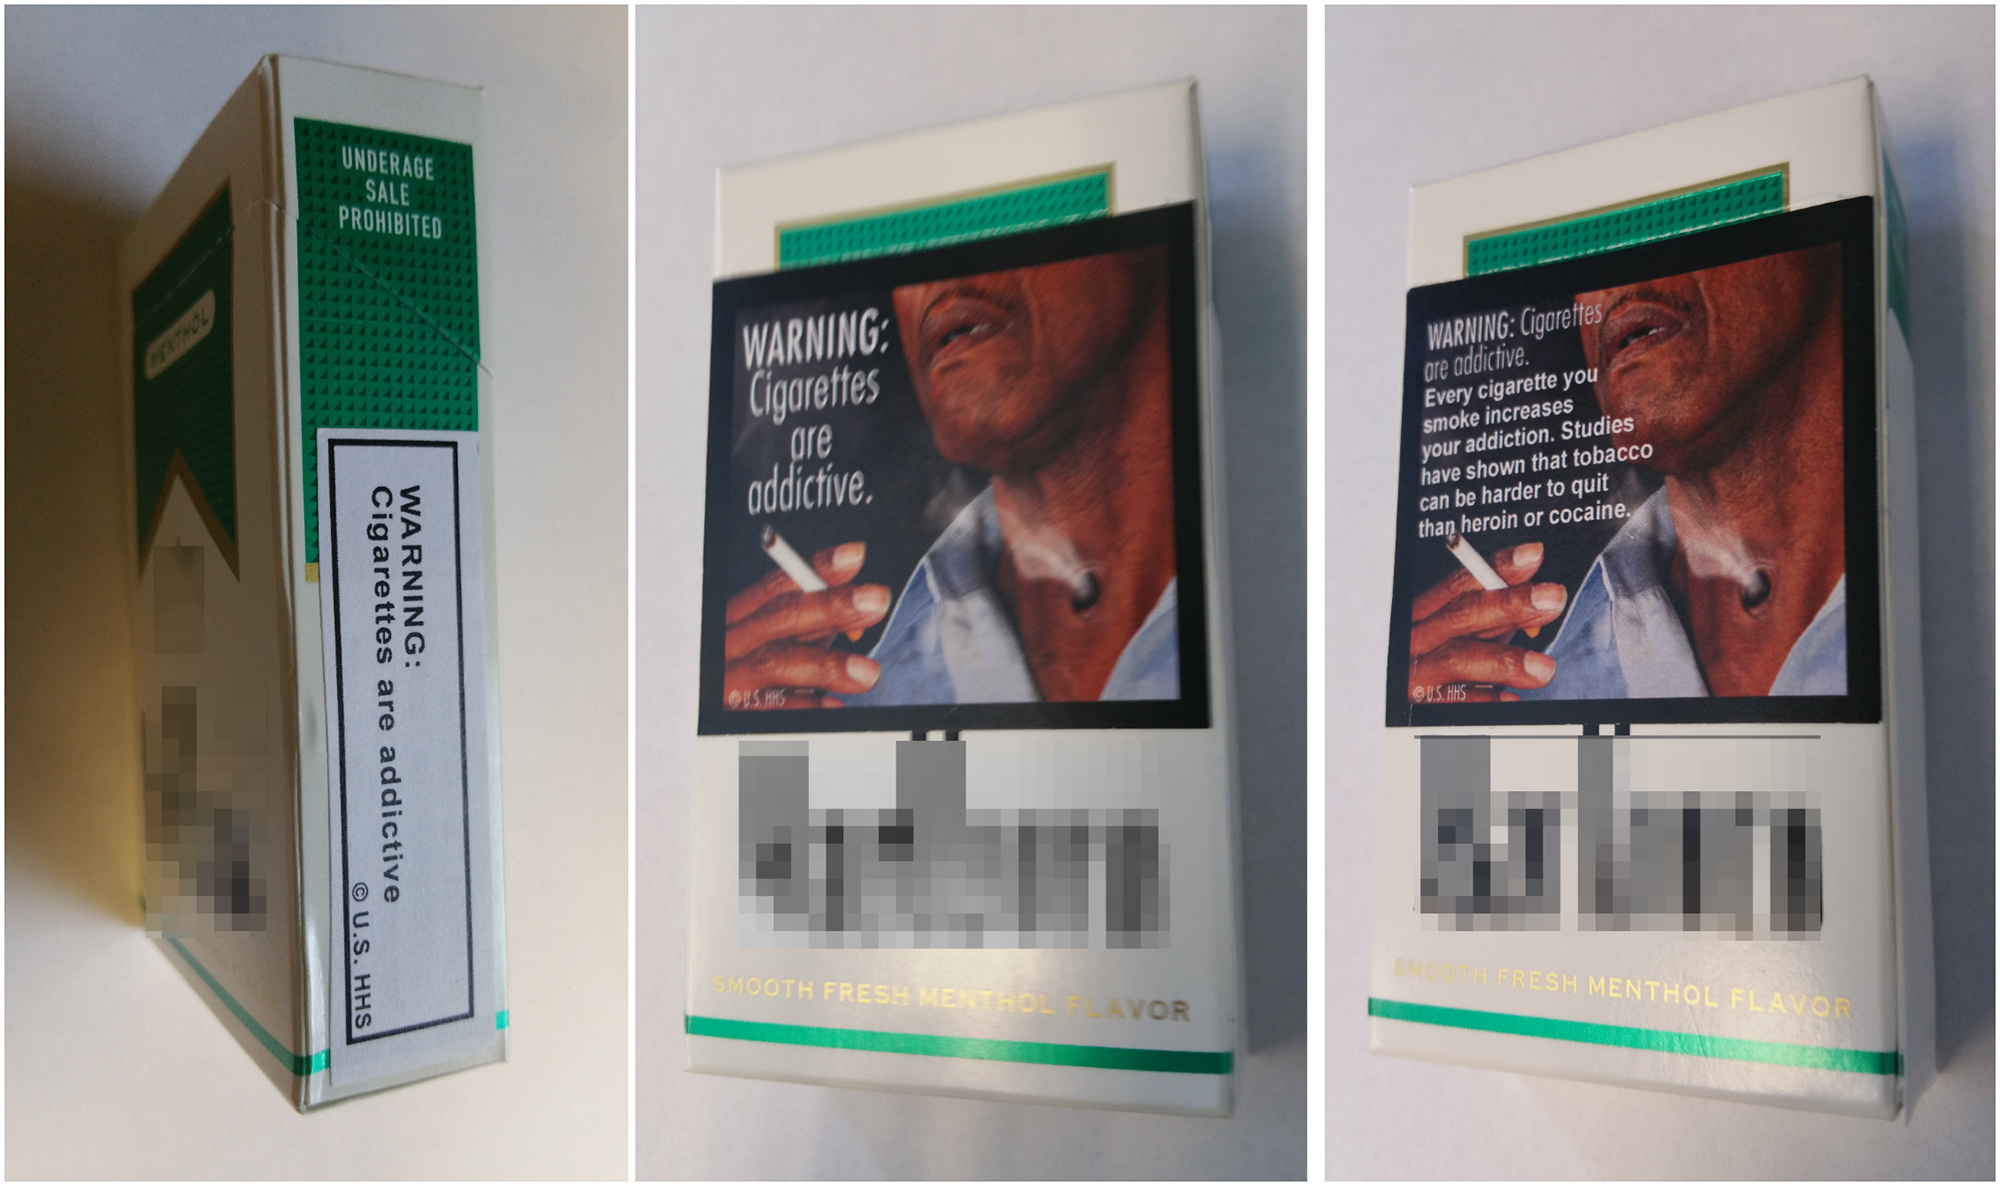 Basic text warnings (left) were placed on the side of cigarettes packages. Graphic warning labels (center) covered approximately 50% of the front of cigarette packages and paired images with basic text statements. Elaborated text warning labels (right) also featured graphic images, but included descriptive text which explained the warning in more detail. Credit: PLOS One.